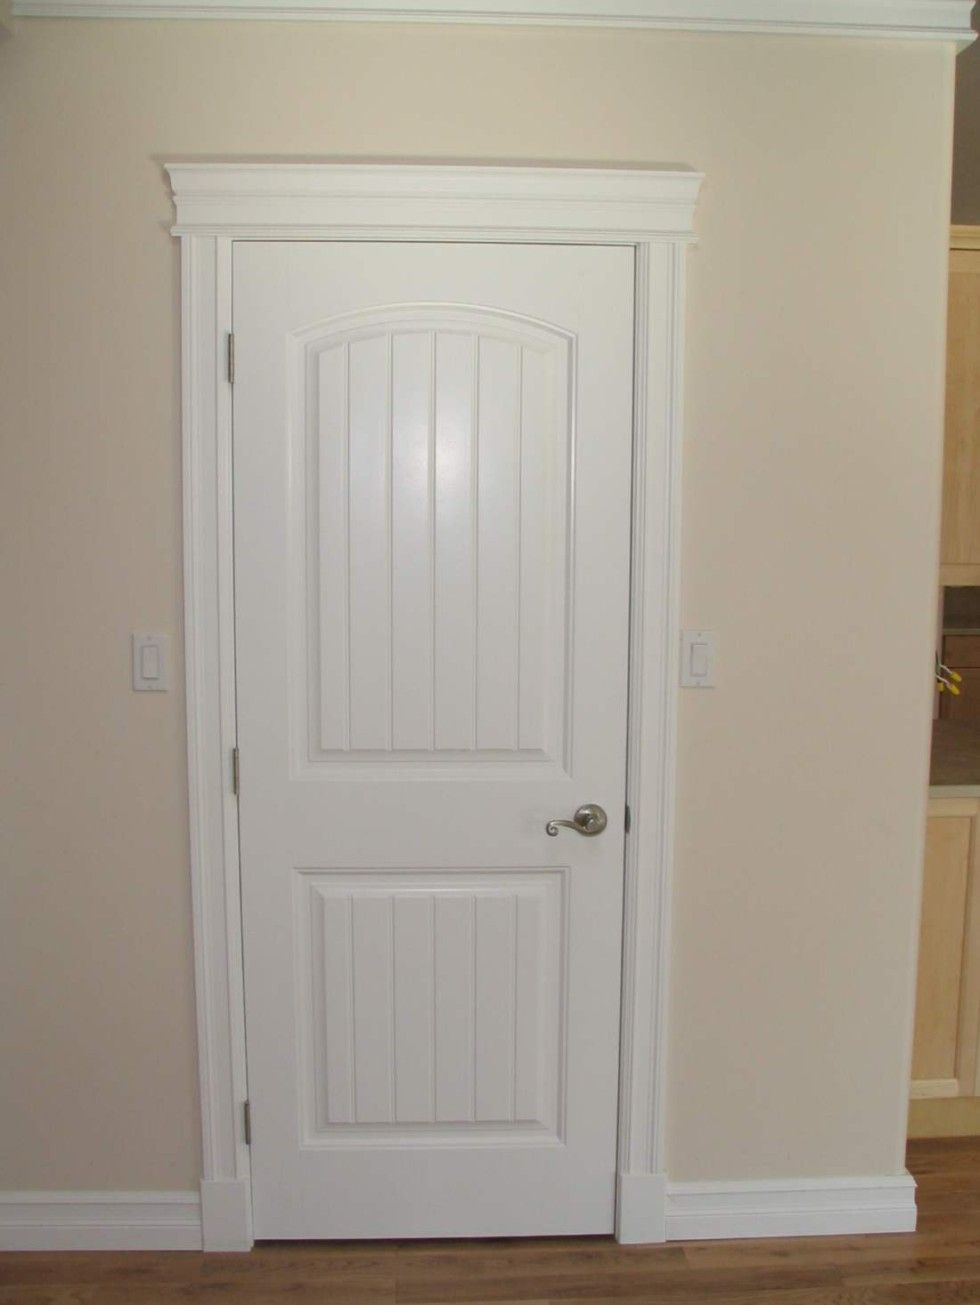 Lowes Interior Doors Wicked Door Casing Styles With Lowes Door Trim Design Ideas And Modern Trim